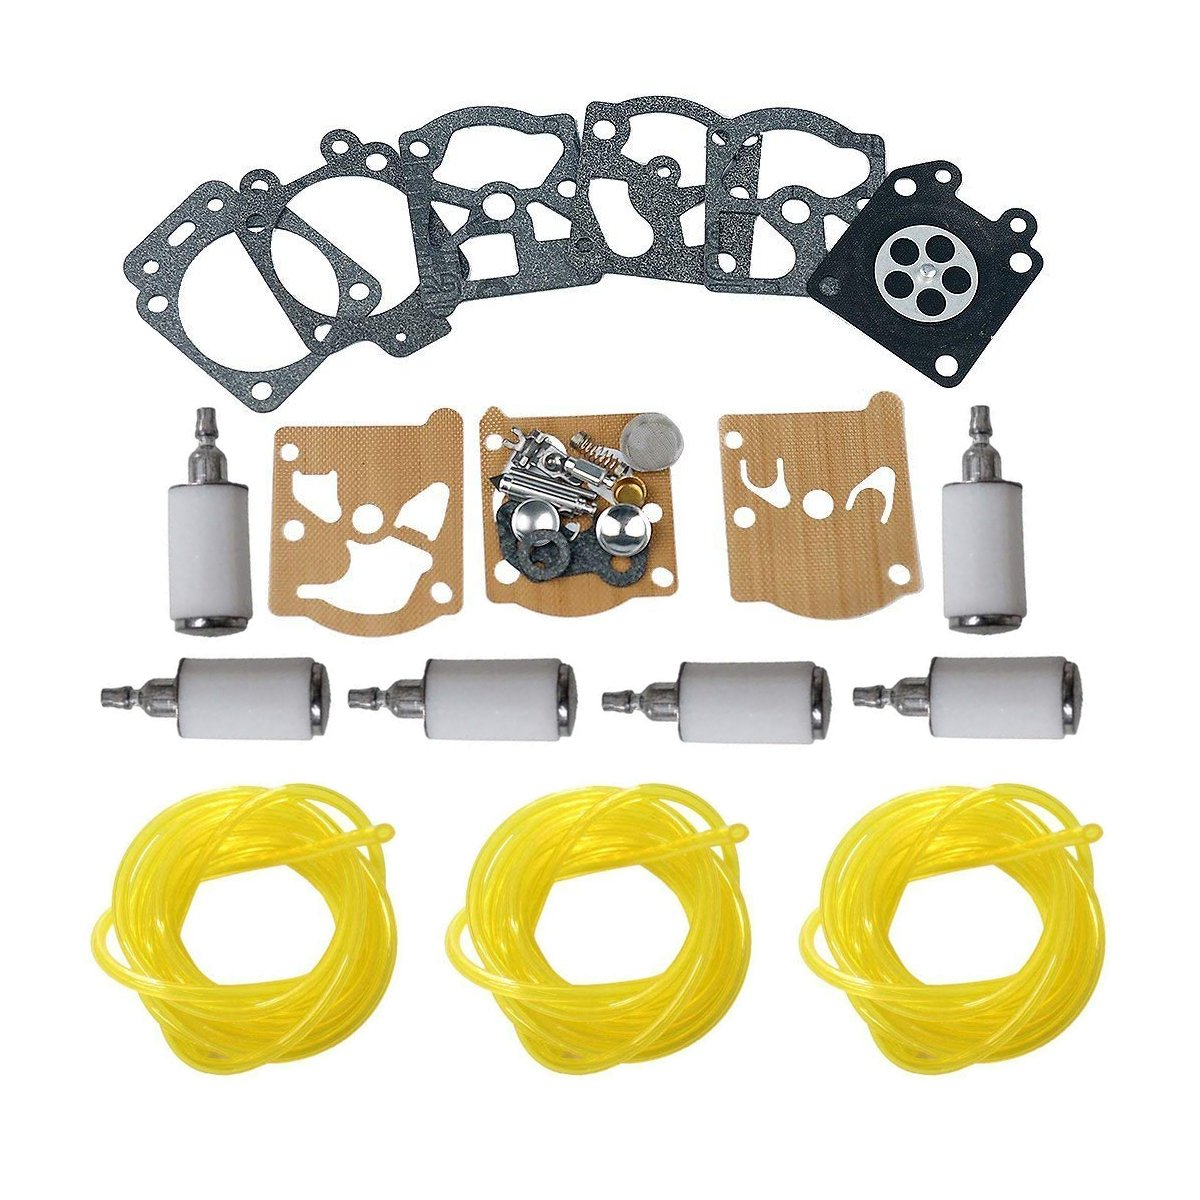 safercctv (TM) K20-WAT k20wat carburador Rebuild Kit con 3 ...